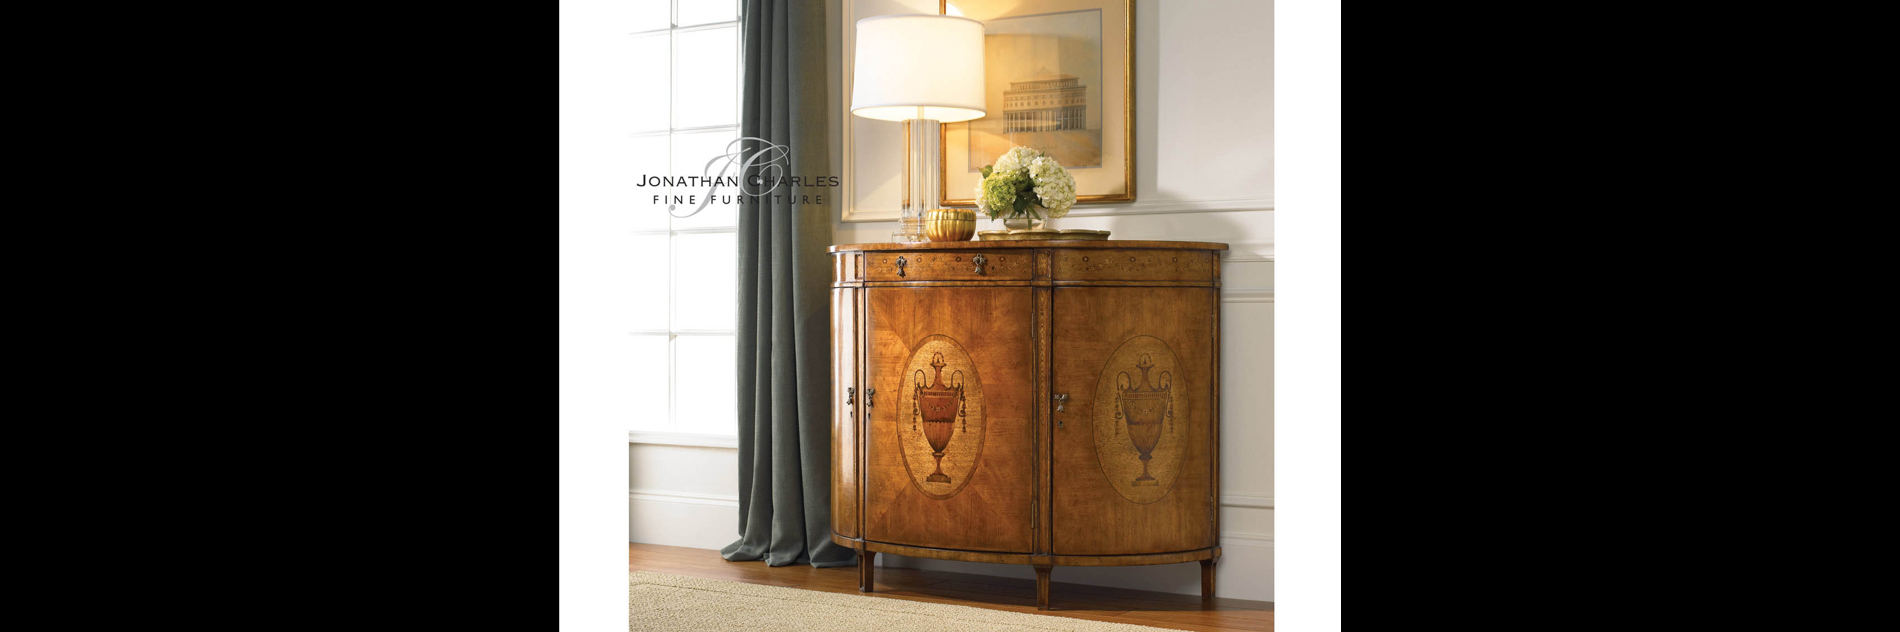 Magnificent Old Hickory Furniture Prices | Adorable Old Hickory Tannery